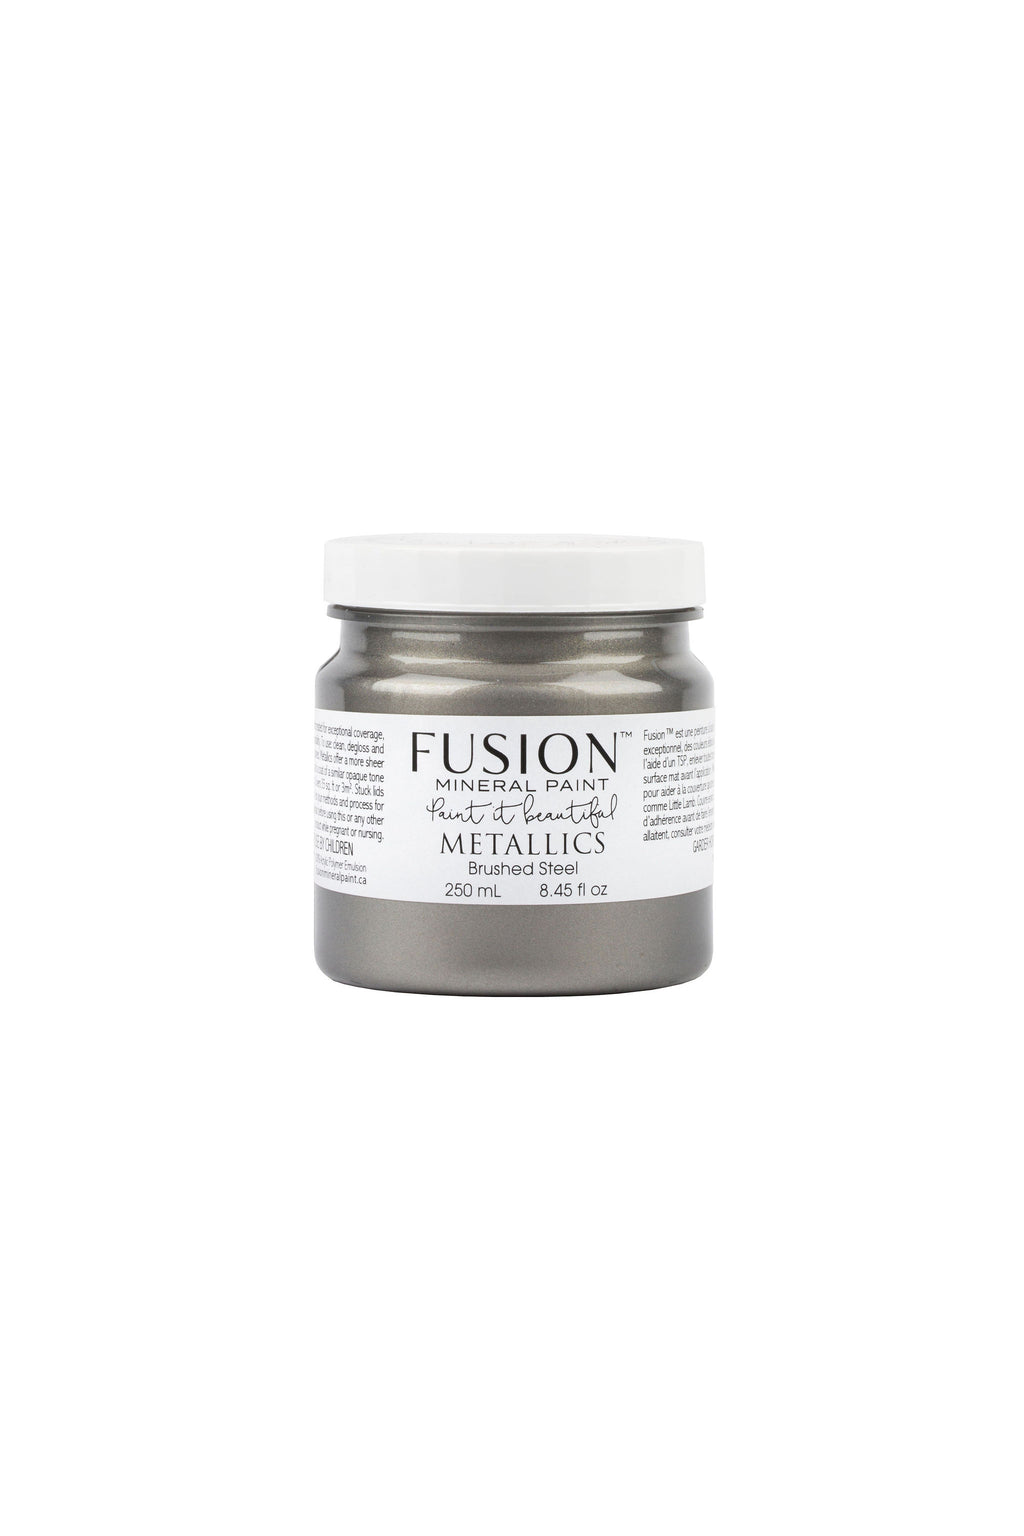 Brushed Steel Metallic Fusion Mineral Paint 260 ml